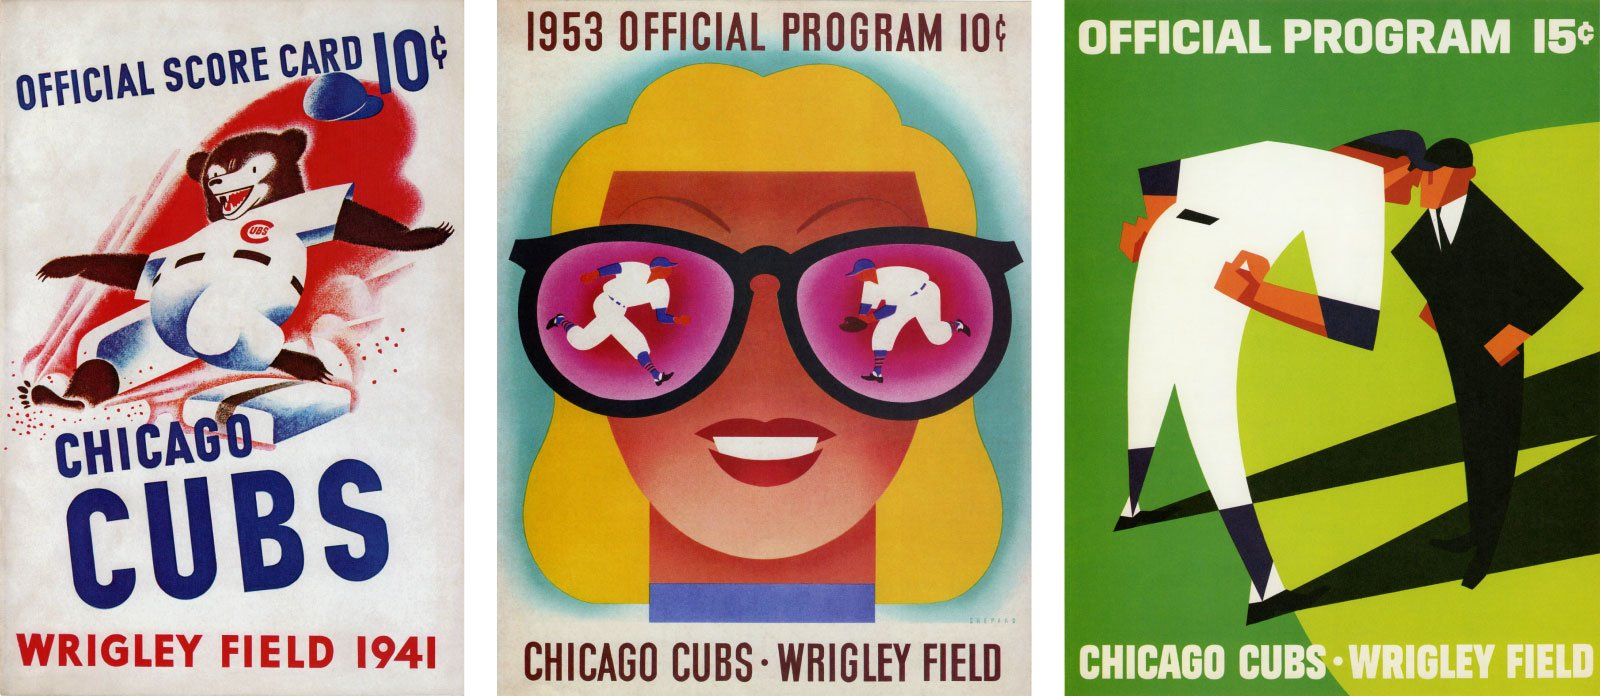 Chicago Cubs official programs